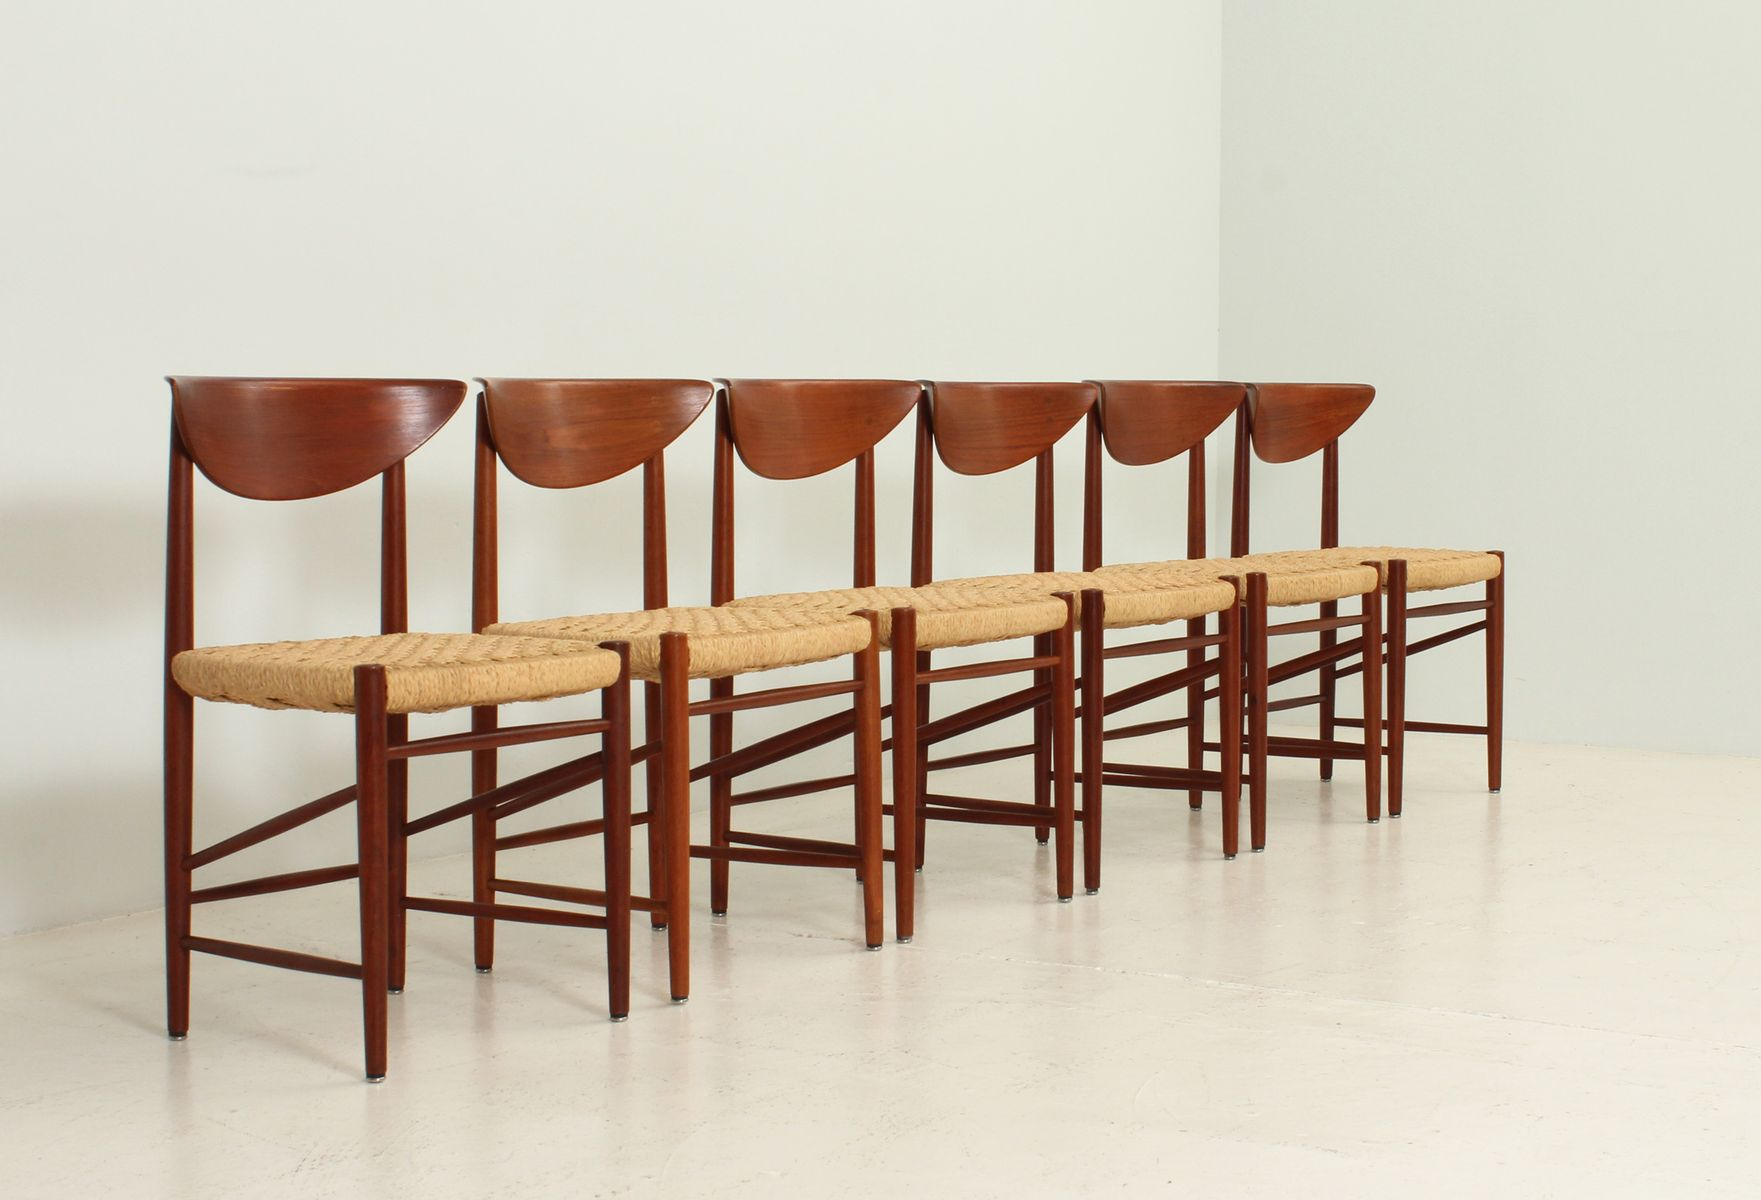 Dining Chairs by Peter Hvidt and Orla M¸lgaard Nielsen for S¸borg